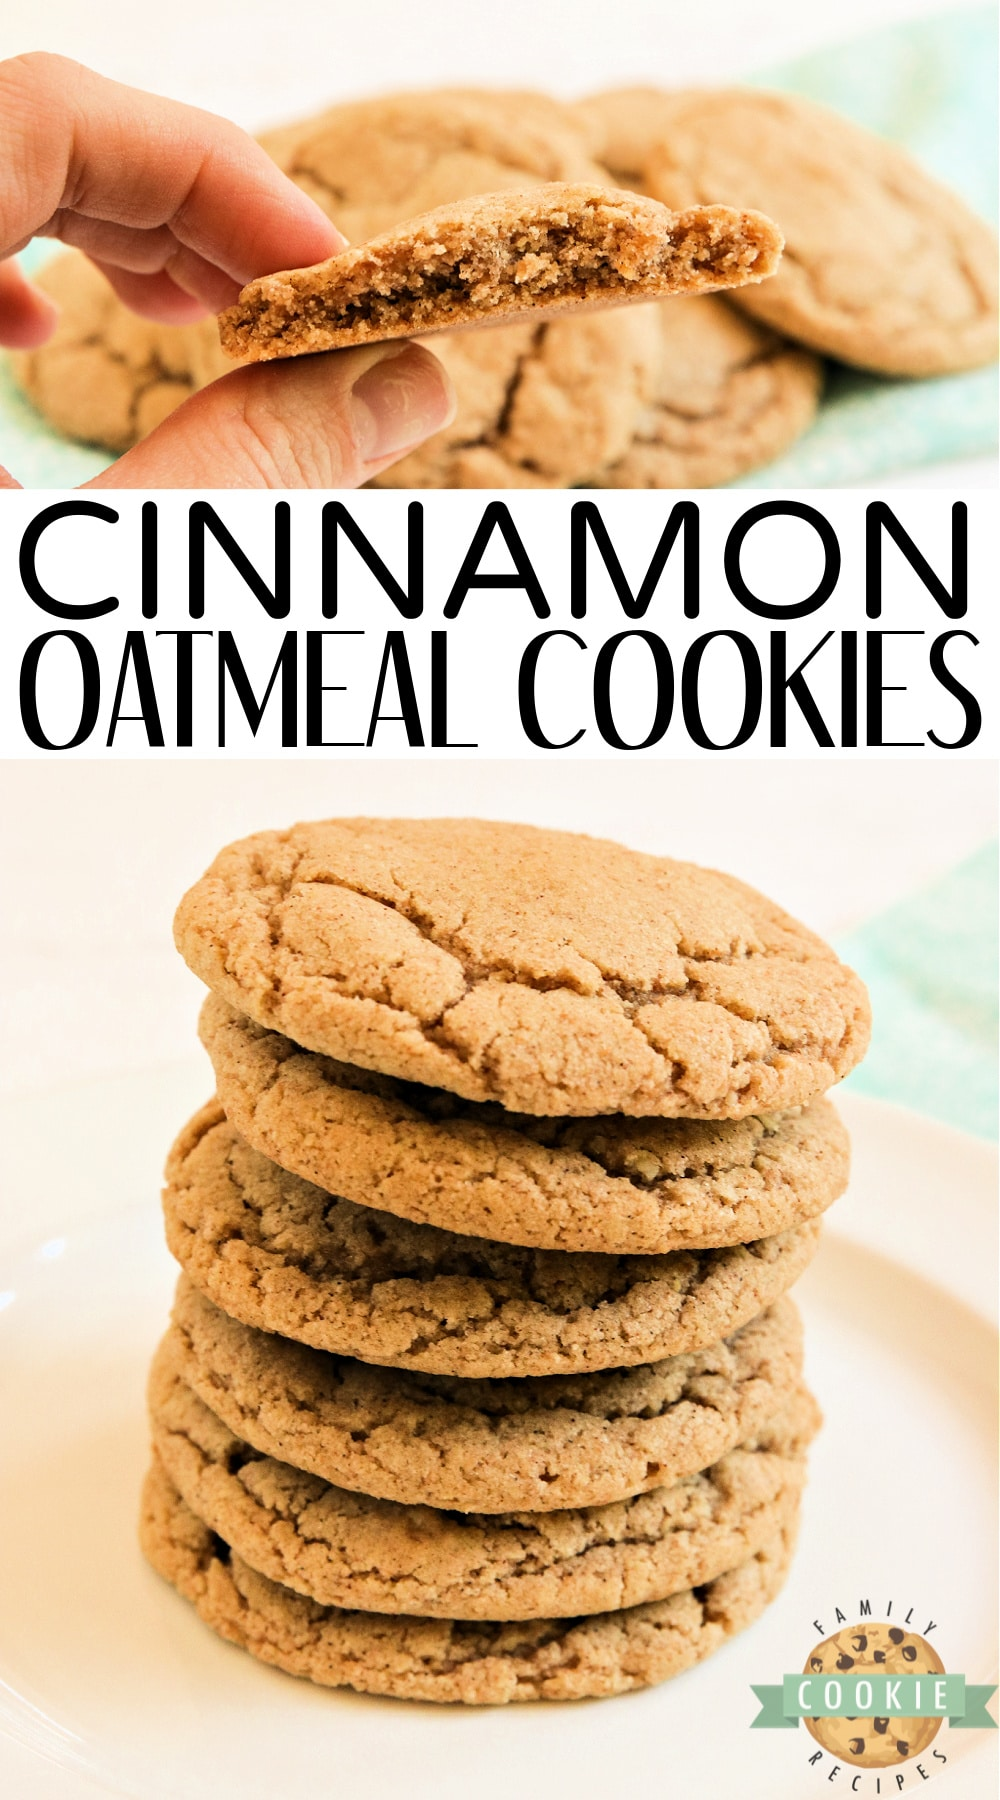 Cinnamon Oatmeal Cookies are soft, chewy and packed with oat flour and ground cinnamon. My new favorite oatmeal cookie recipe! via @familycookierecipes